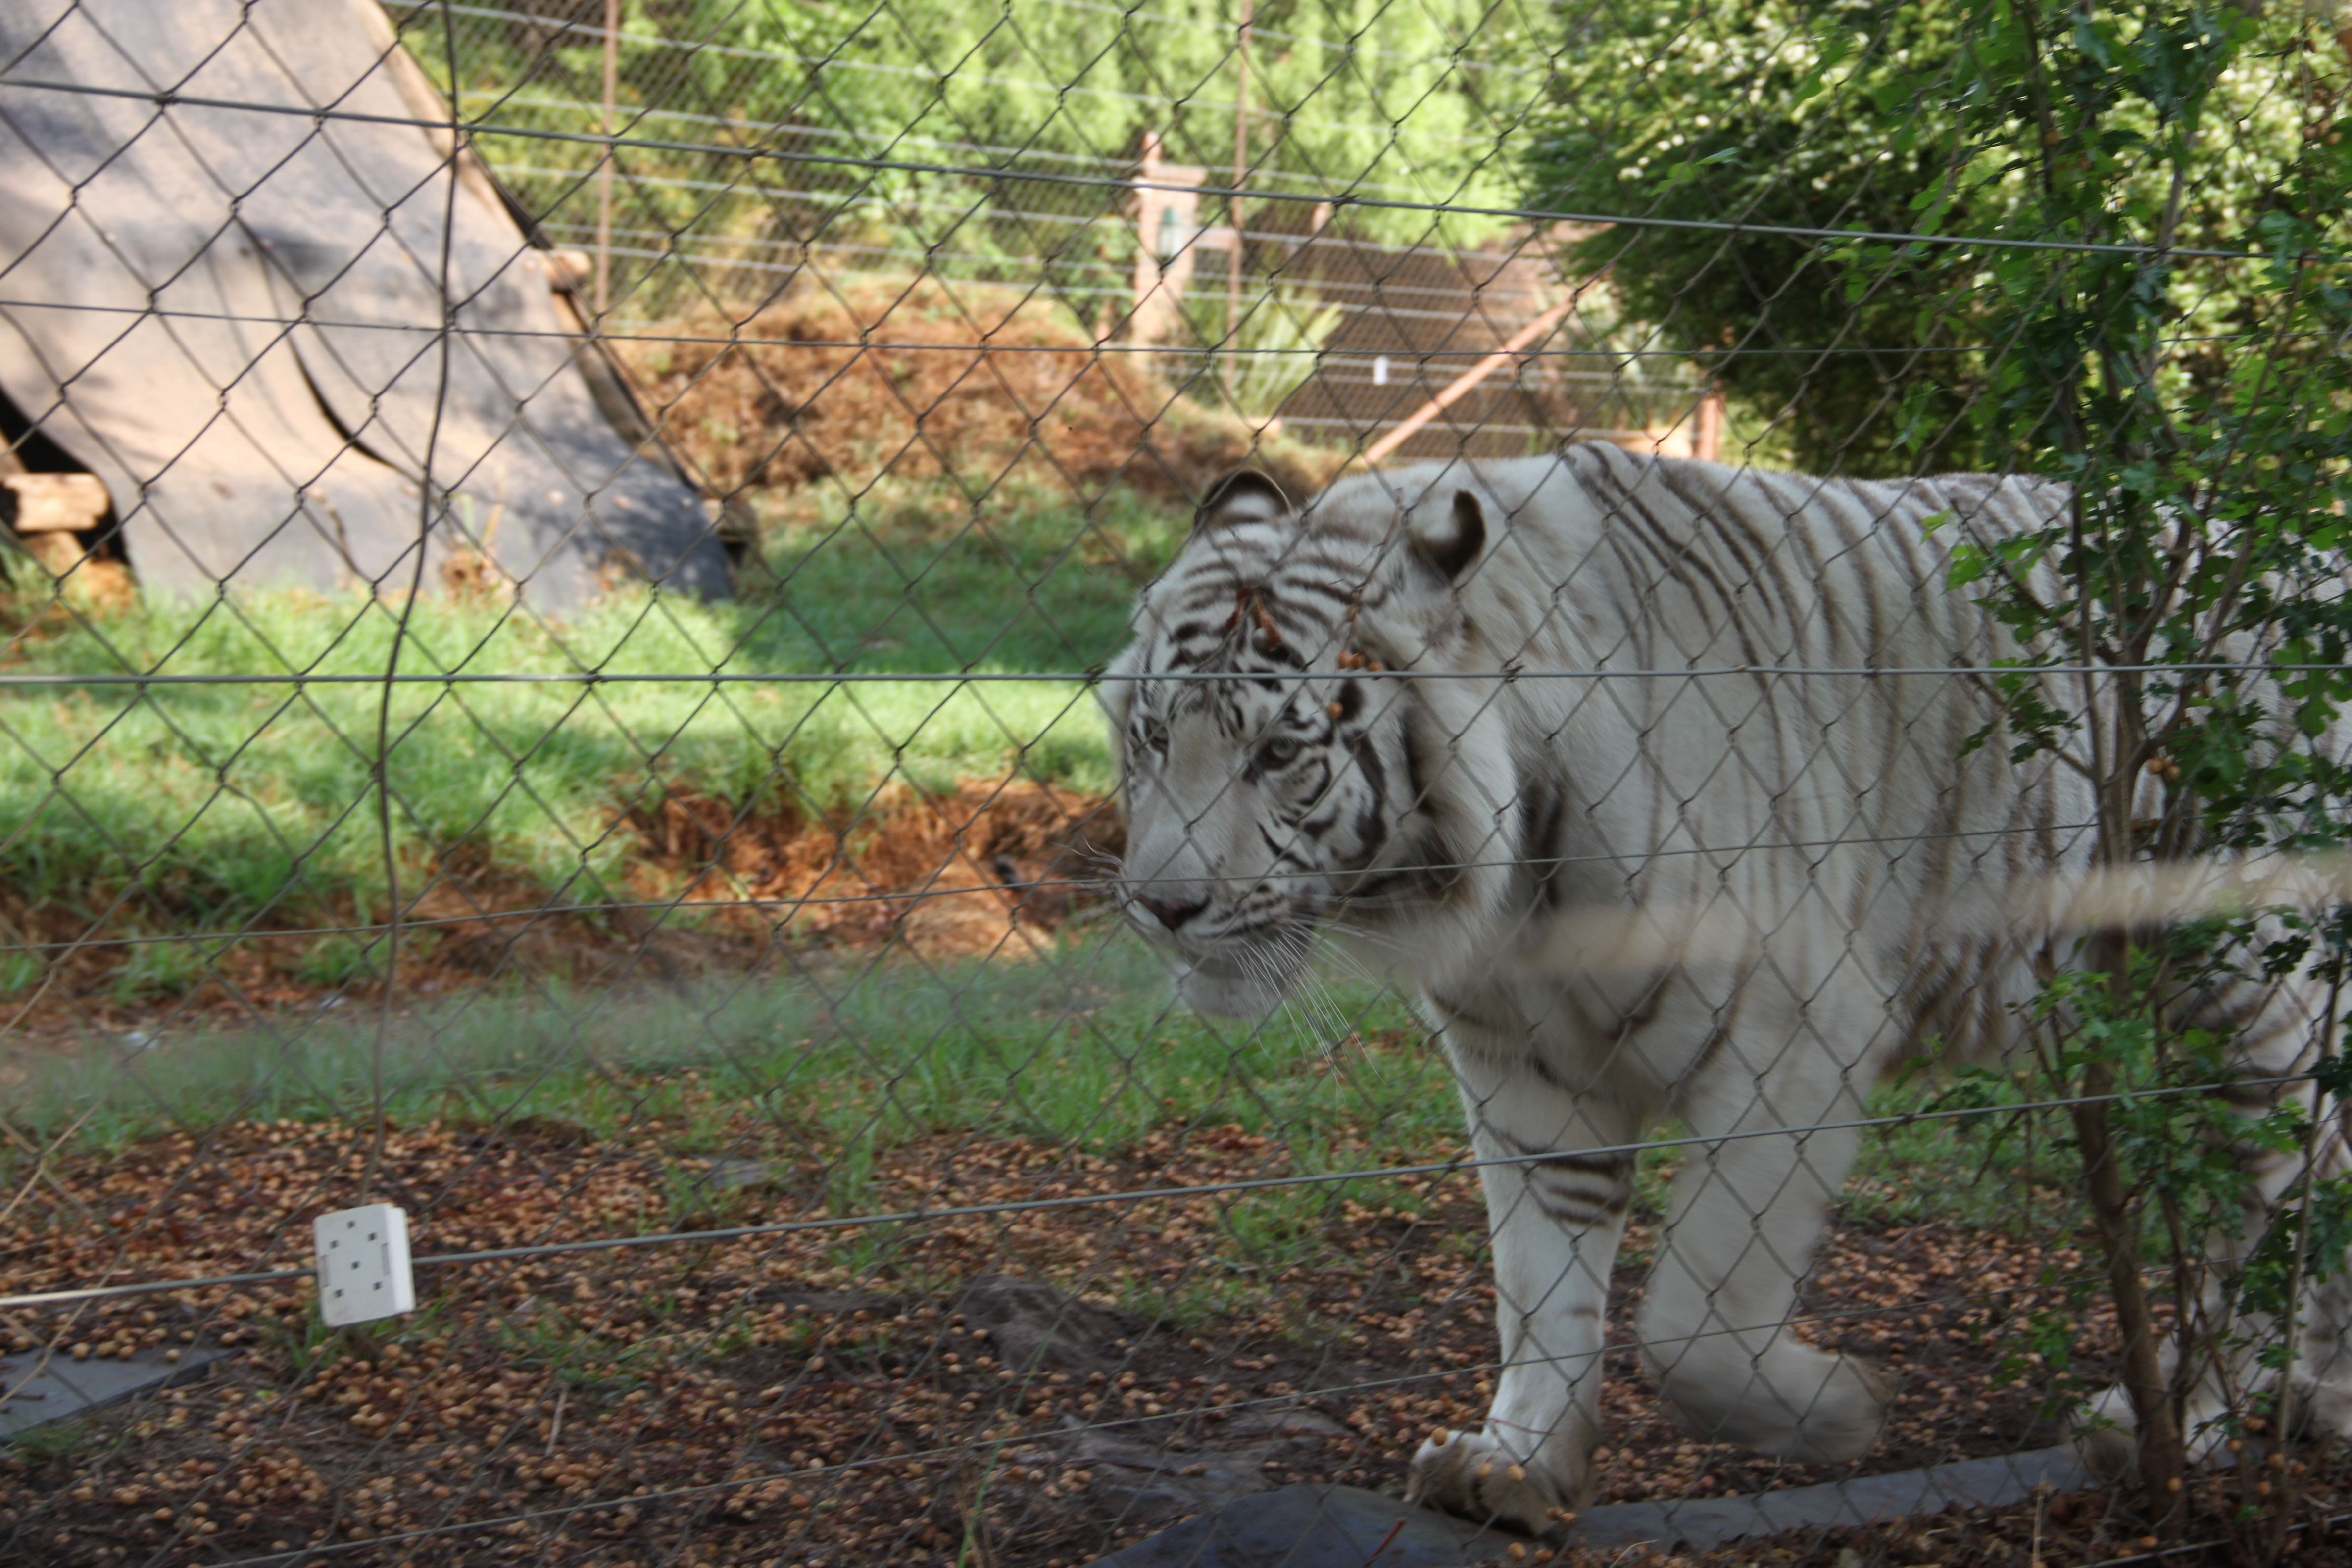 Tiger and rhino farms set to rise to meet Chinese demand (Nikkei Asian Review)